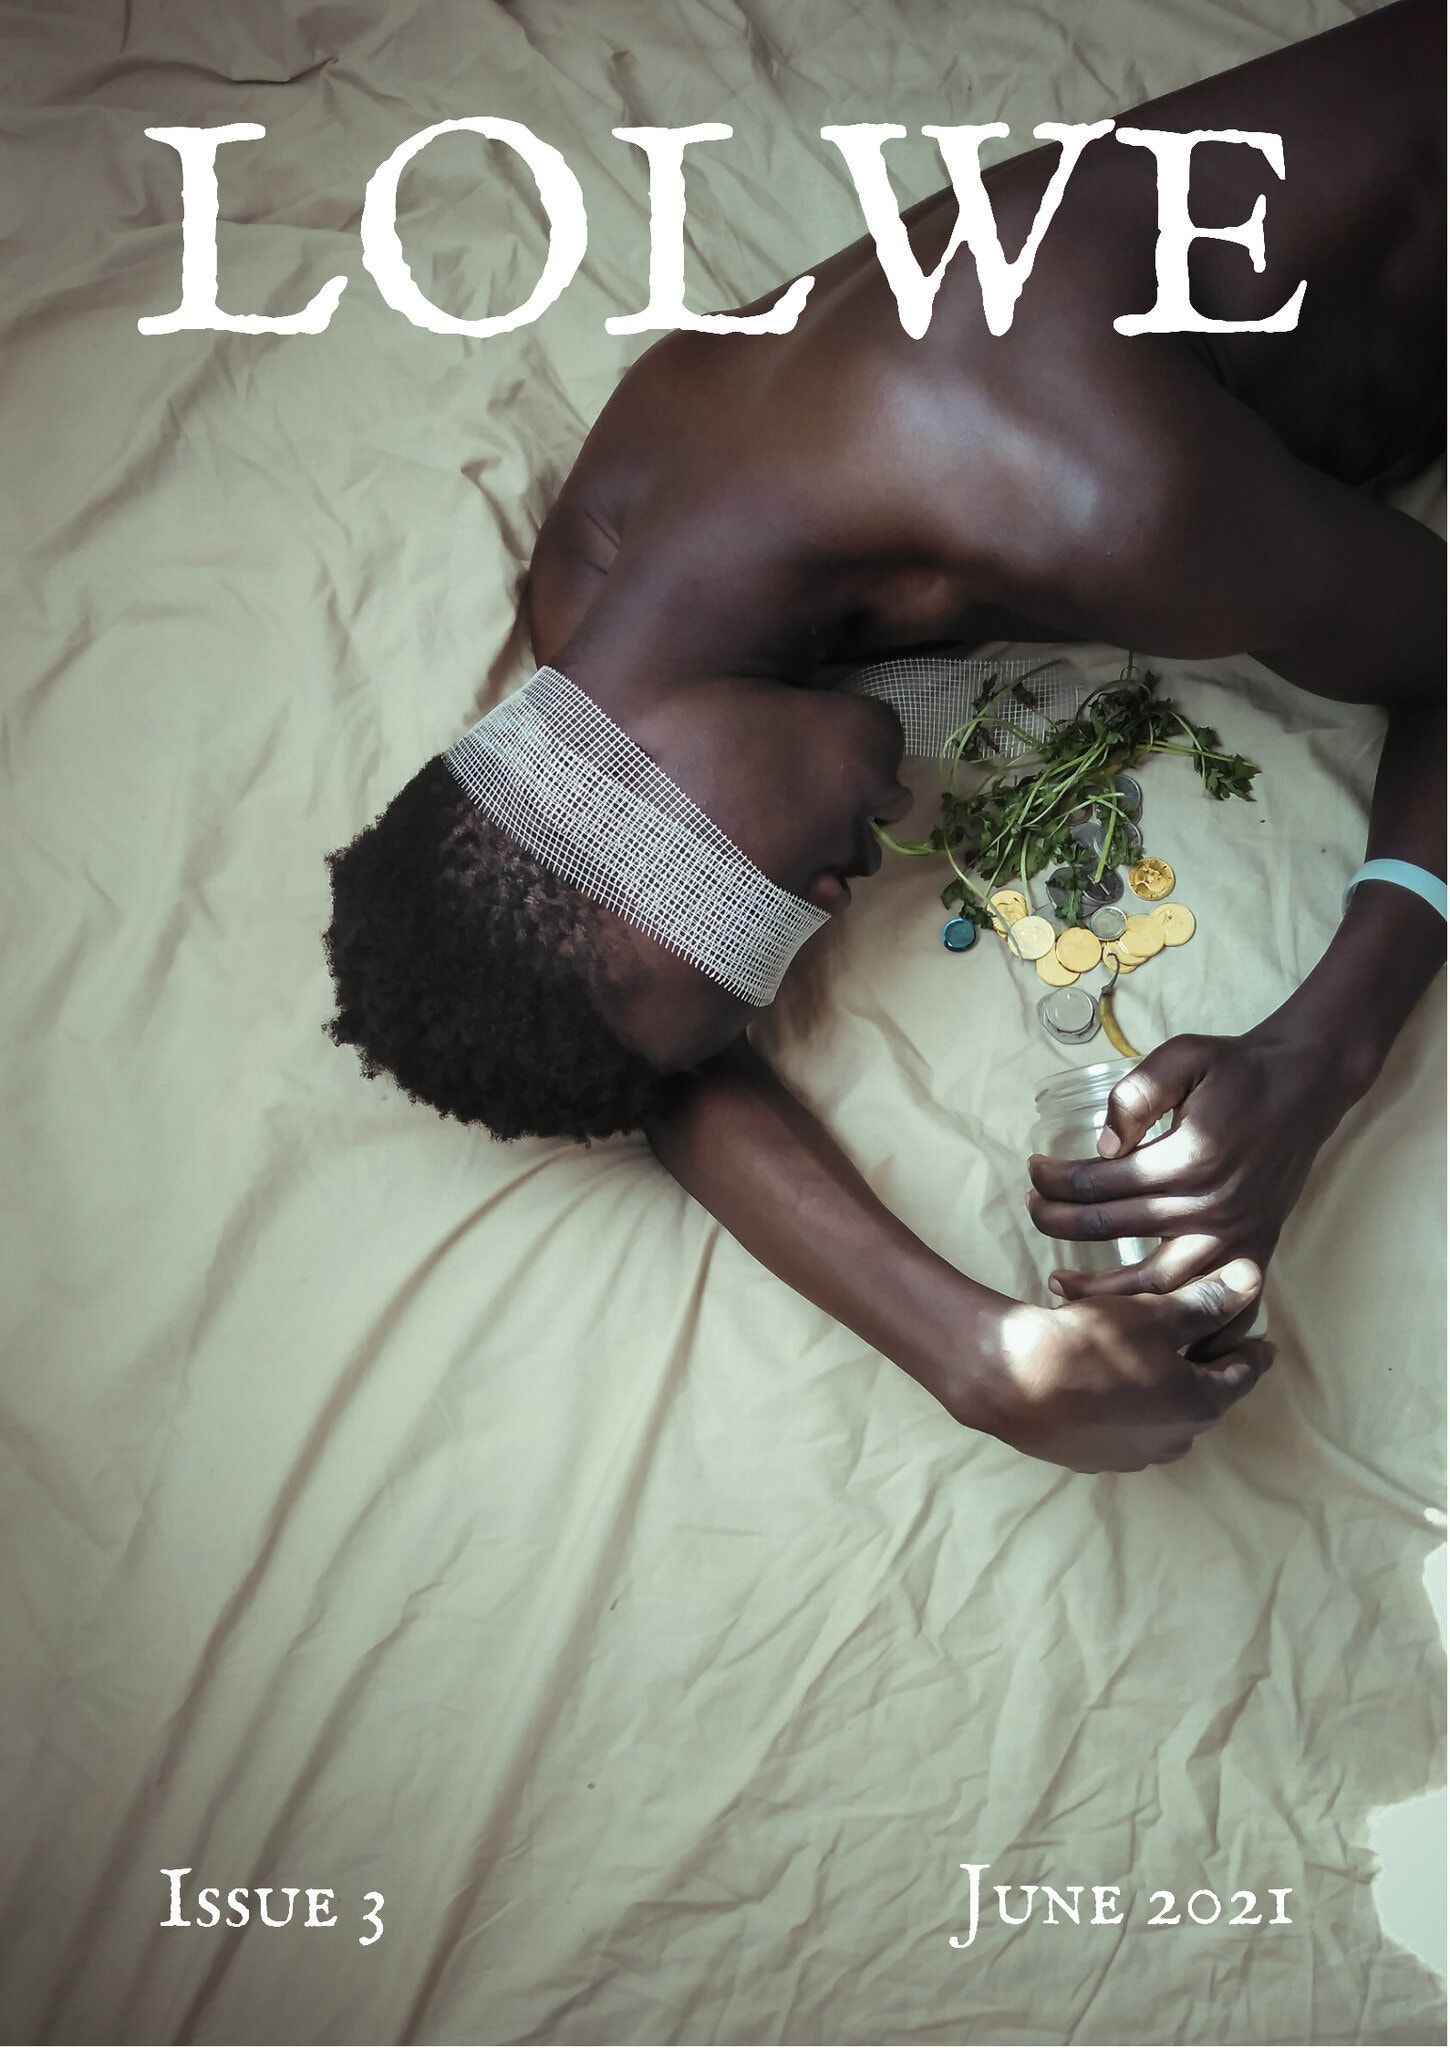 Image of the cover of Issue 3 of the online literary journal Lolwe